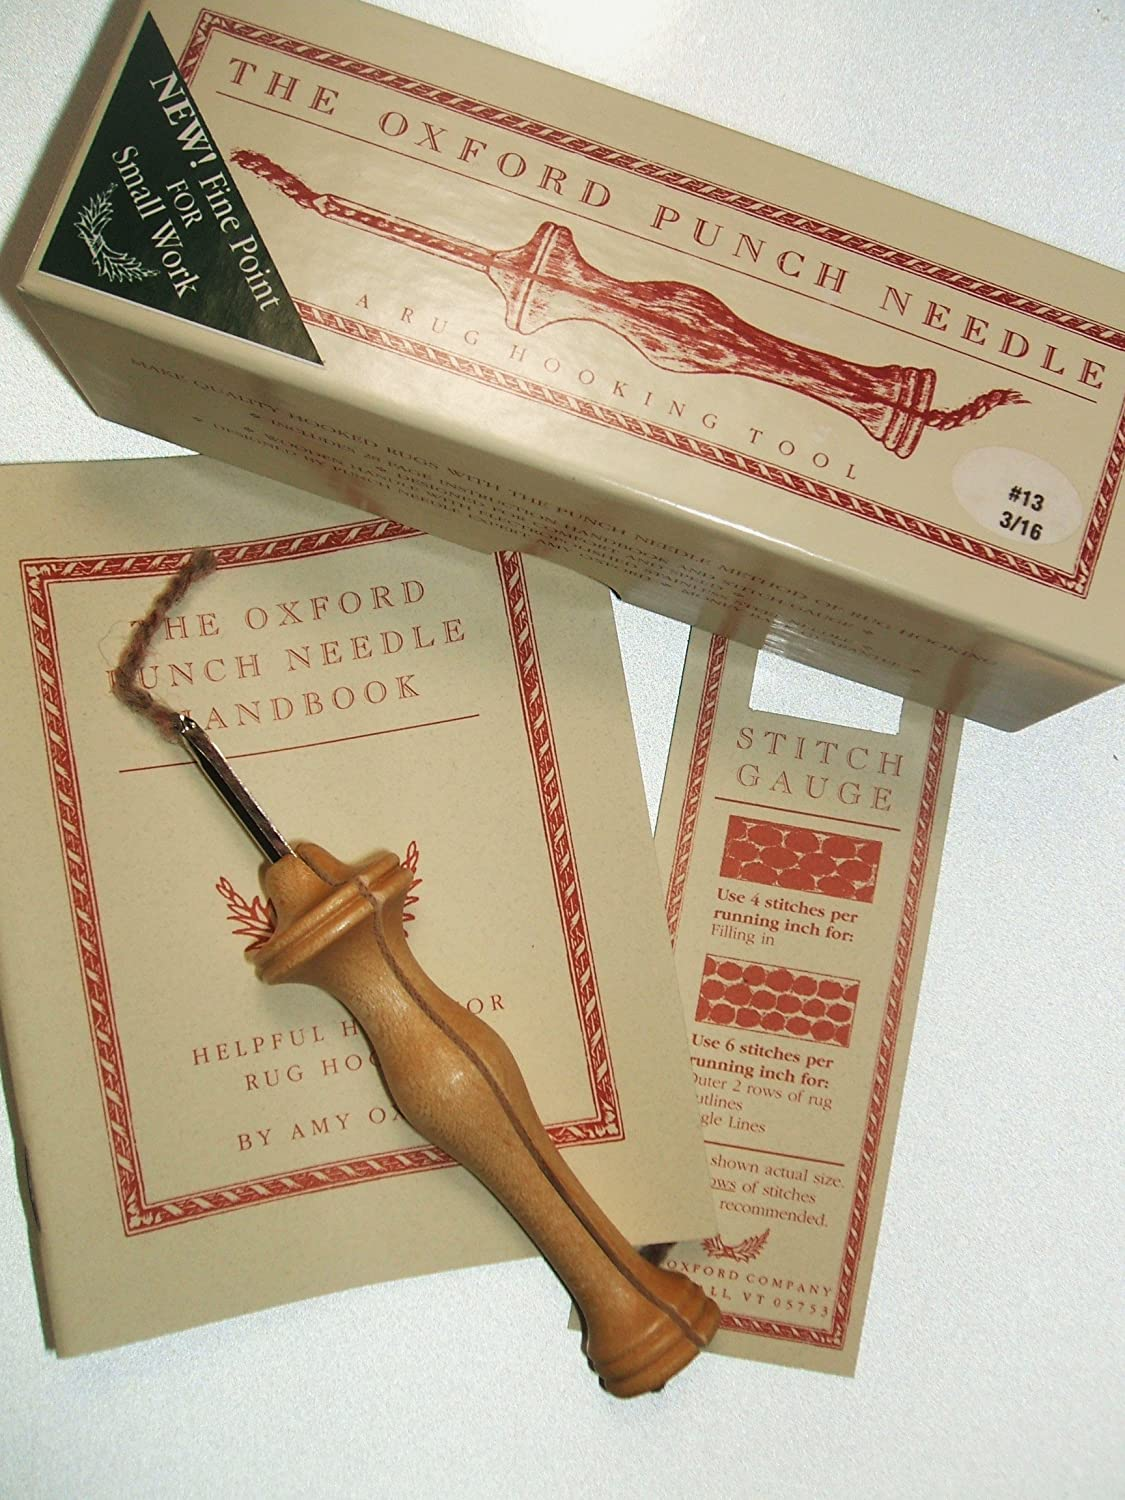 Oxford Wood Punch Needle Rug Hooking Tool The Mini with Heels #13 3/16